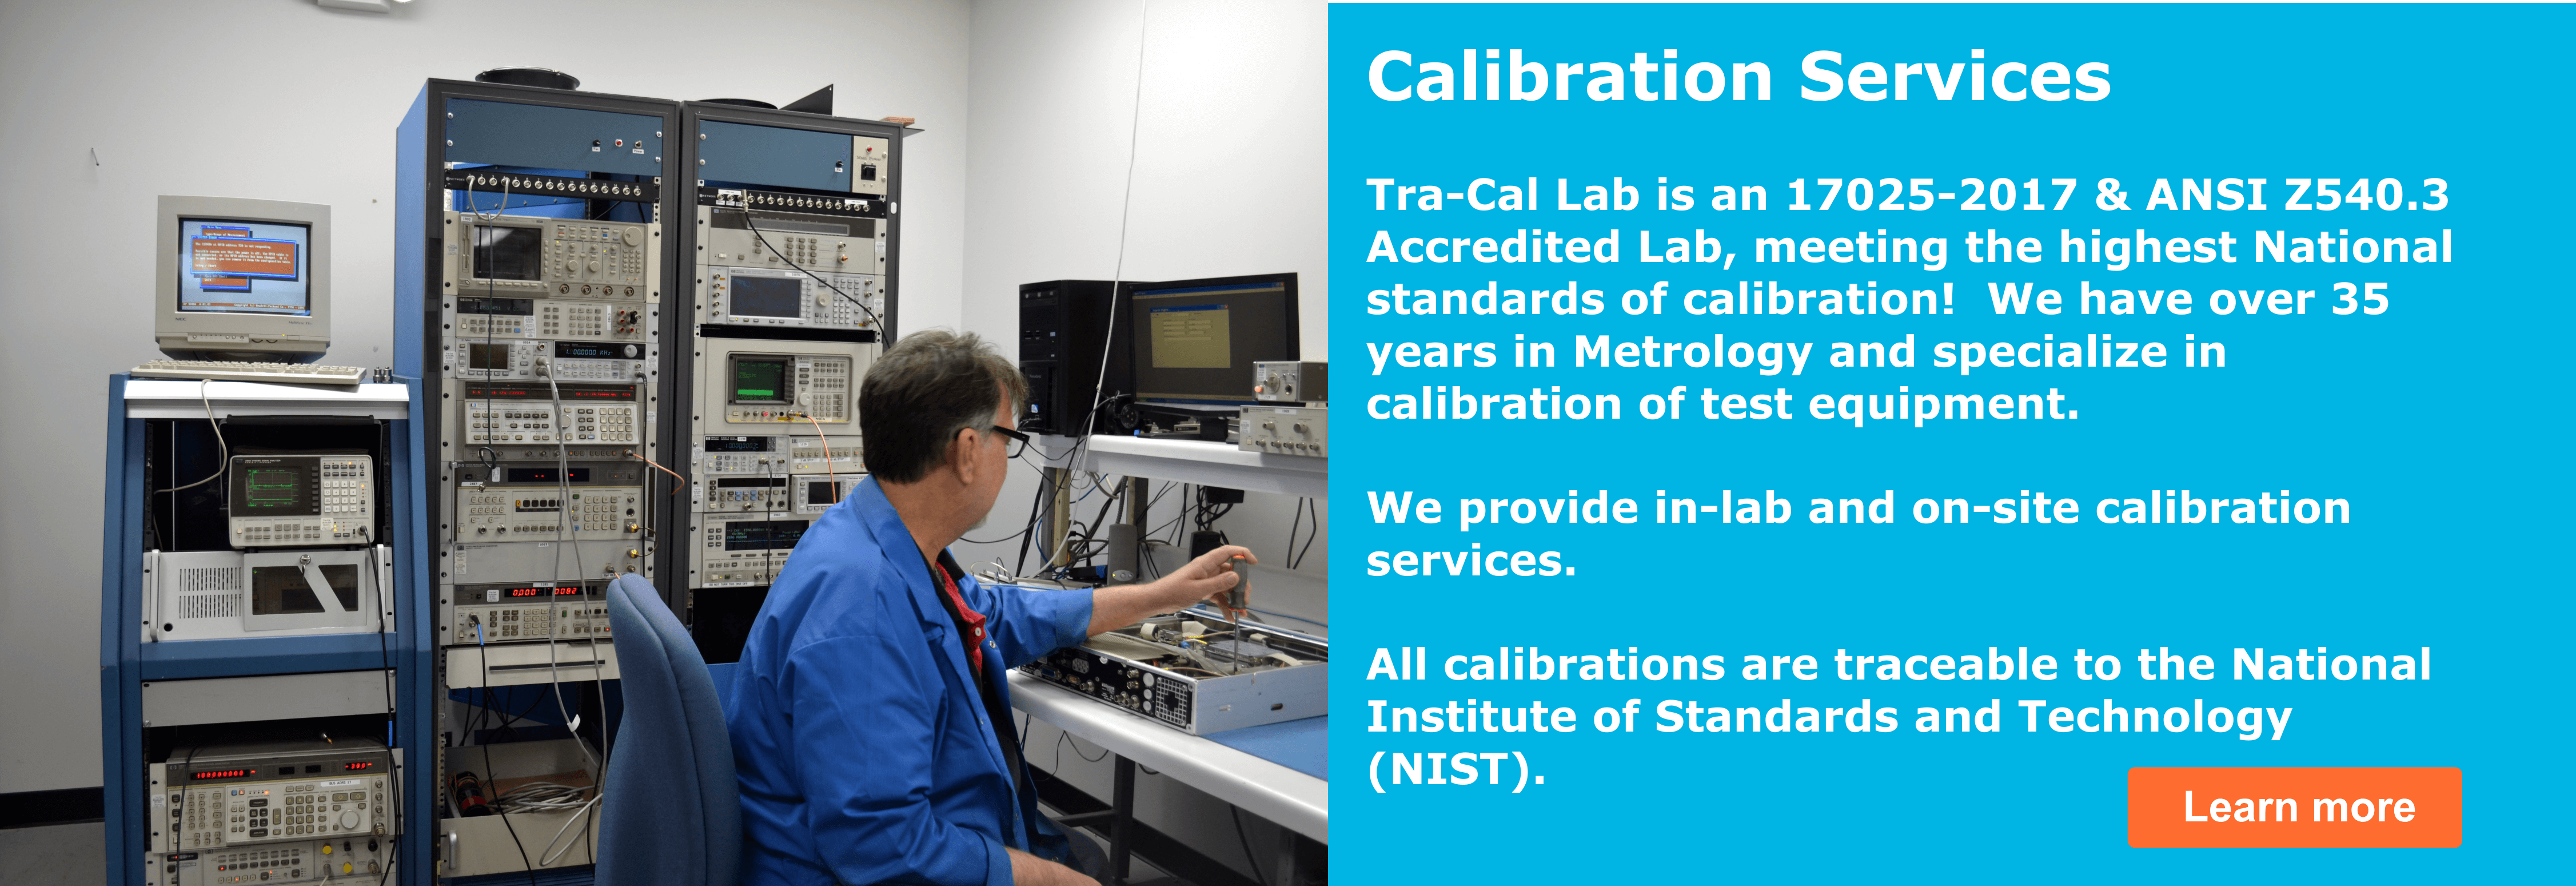 onsite calibration services